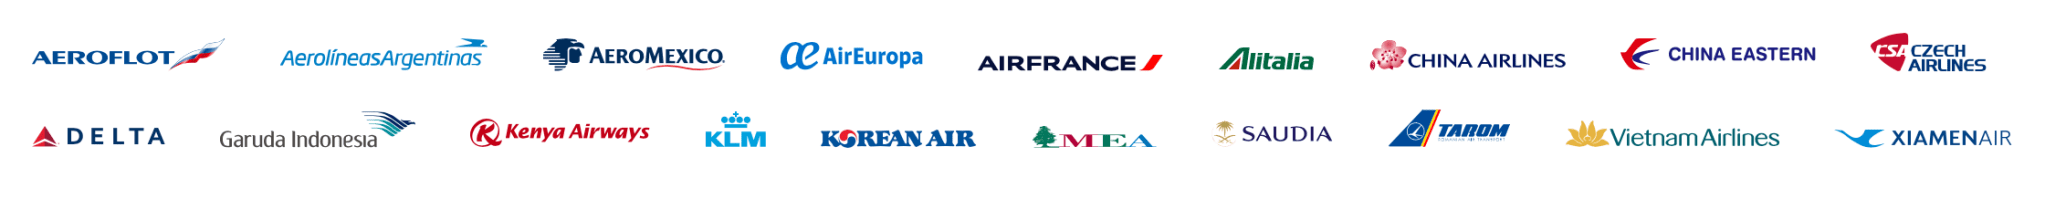 SkyTeam Partners as of 2020 Screenshot